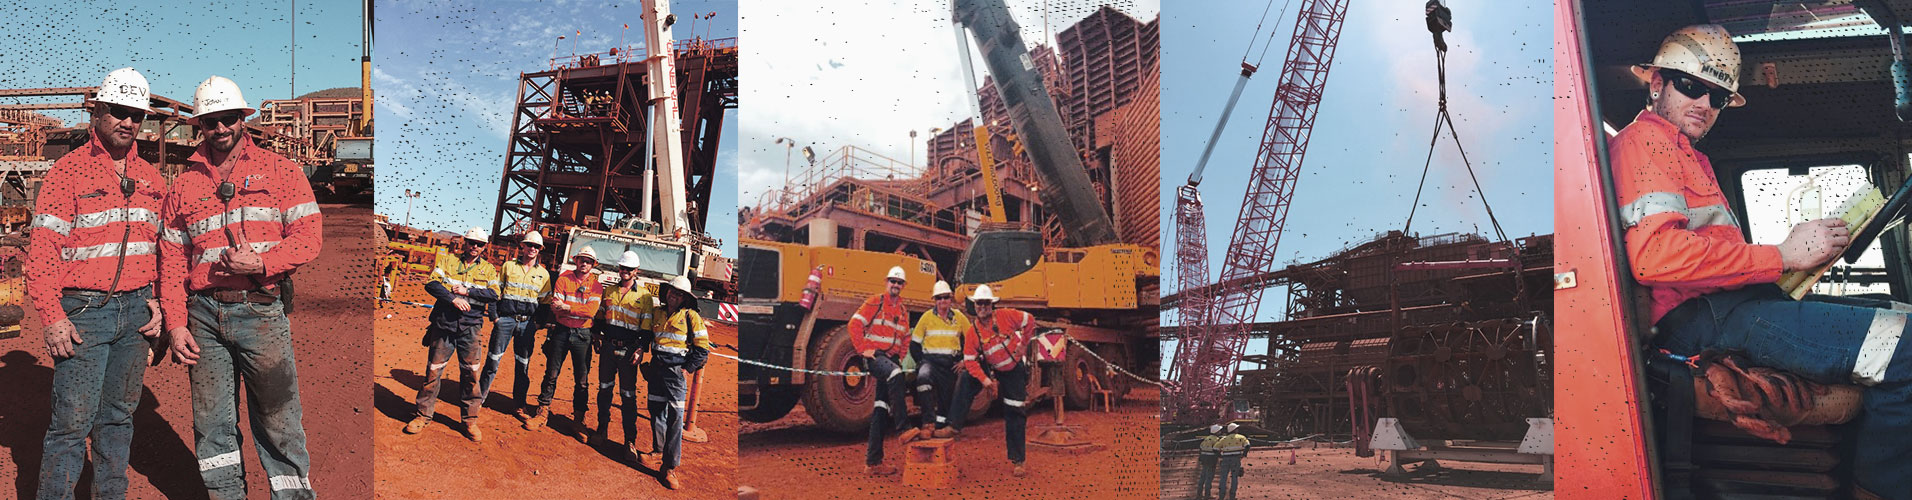 Shutdown Mining Riggers Trade Assistant Cadia mine NSW-iMINCO.net Mining Information